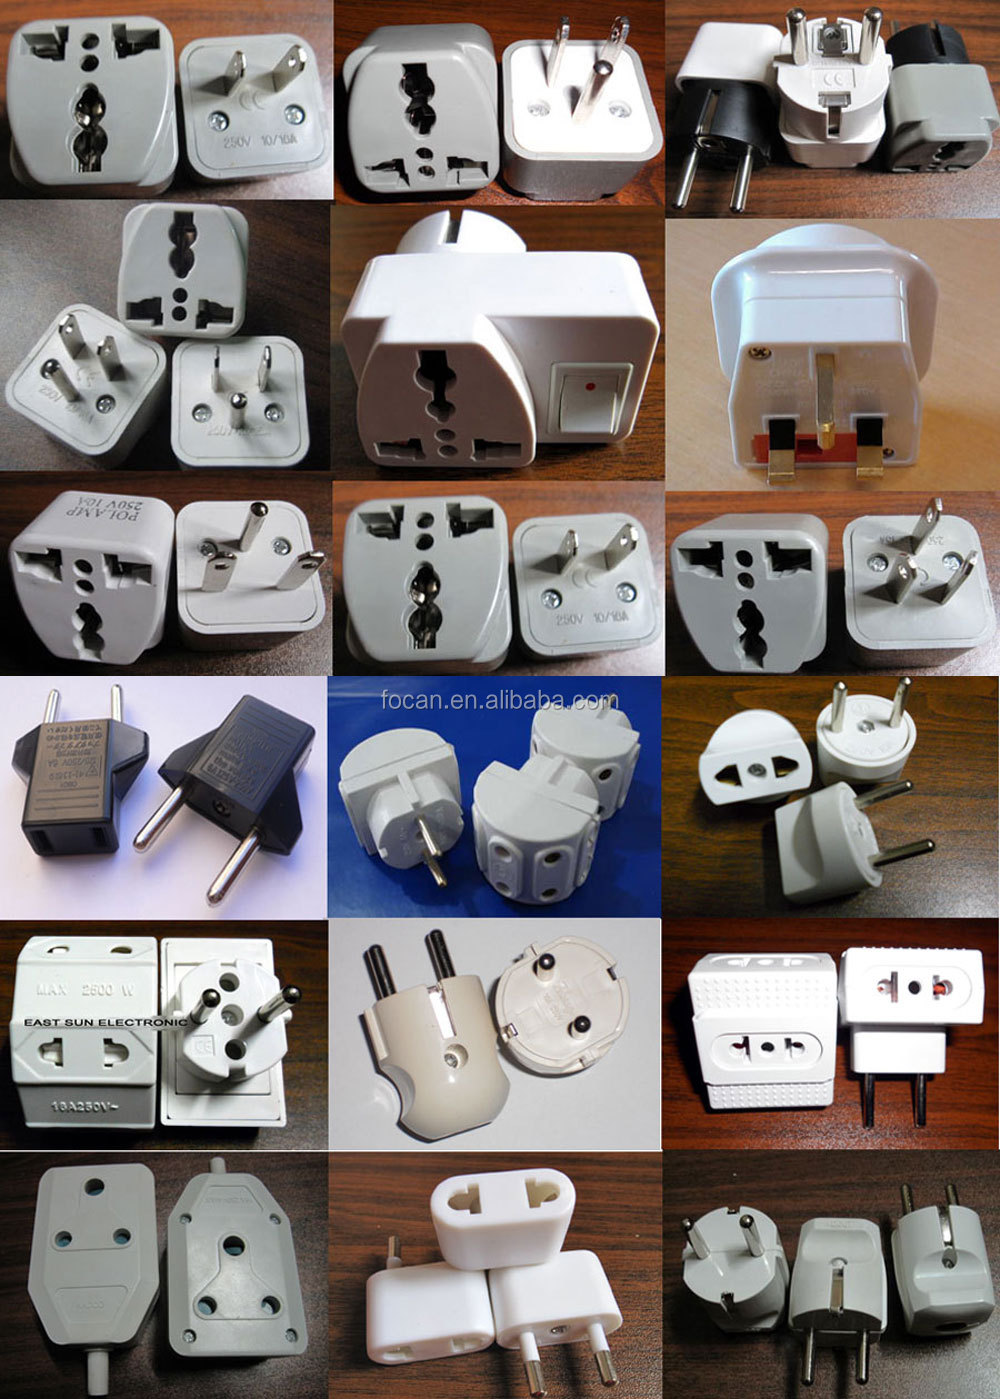 SAA Australia Surge Protection Travel plug Adapter with 2 USB Outlet